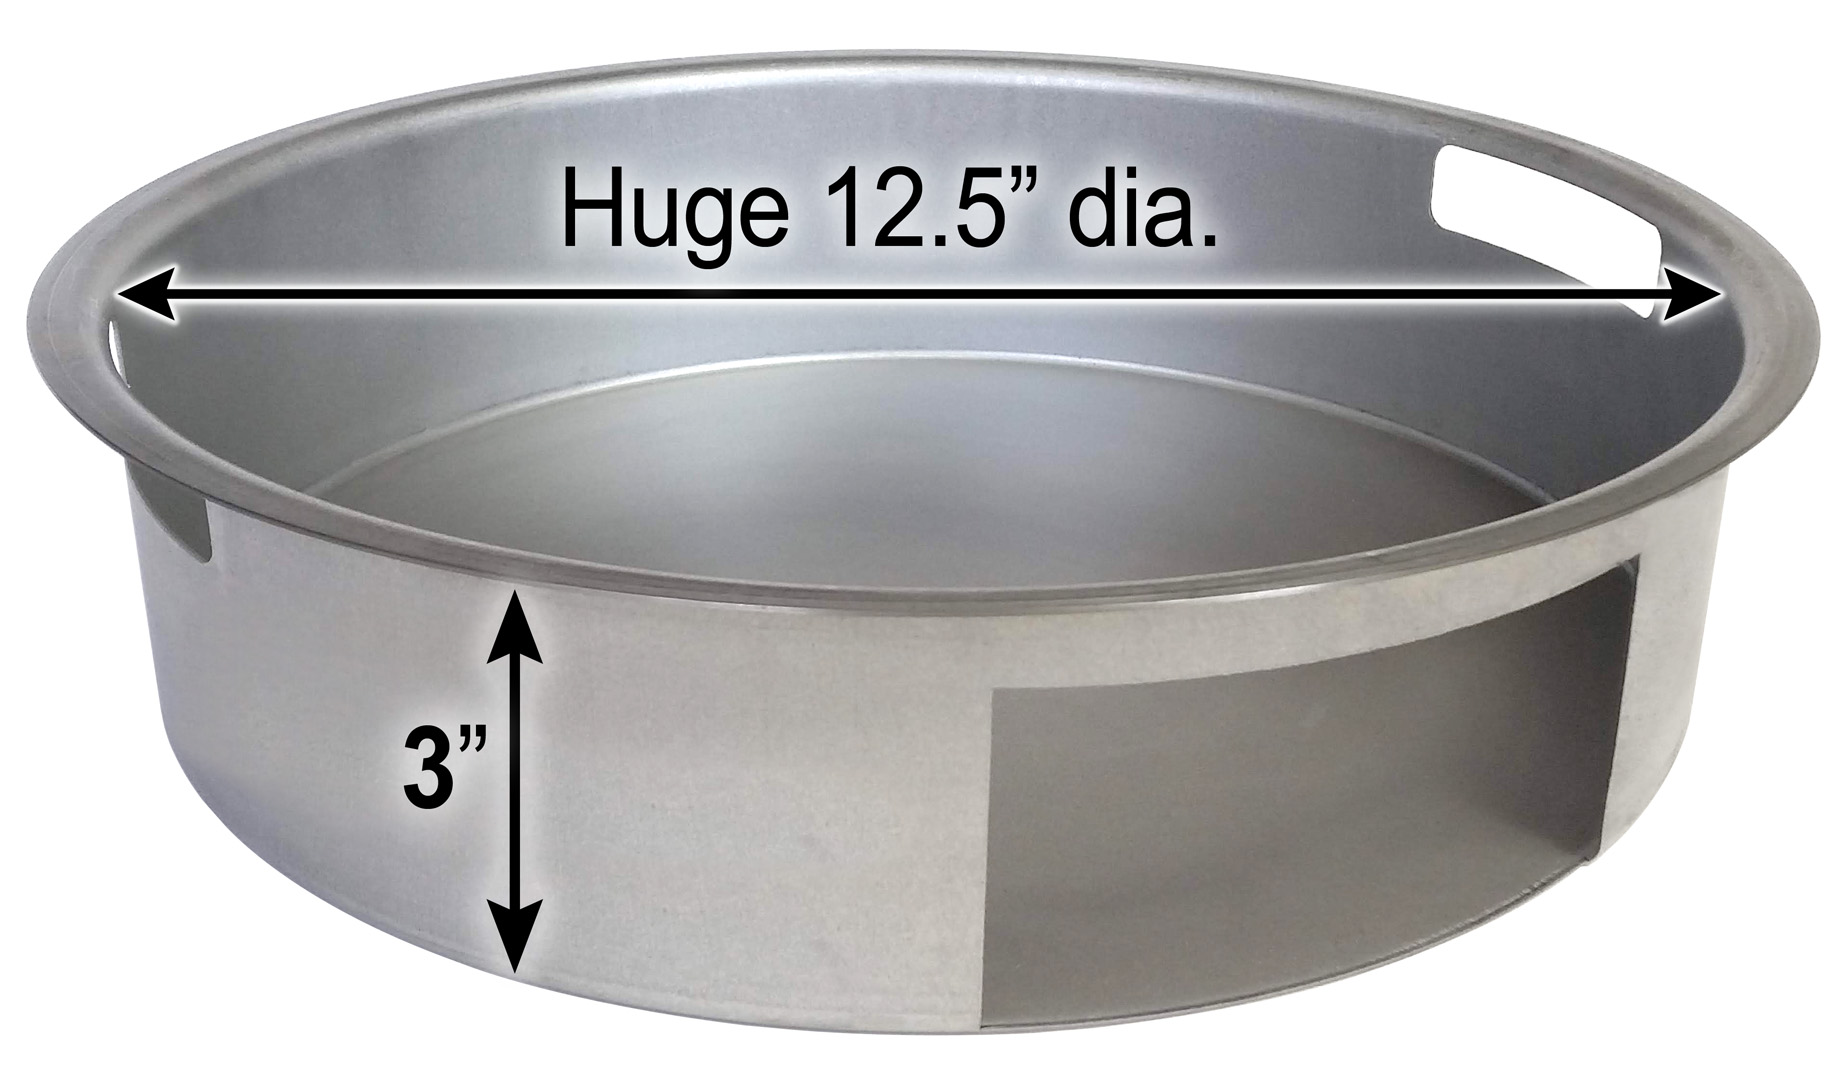 Saffire's lift-out ash pan has a huge 12.5 inch diameter and a 3 inch height